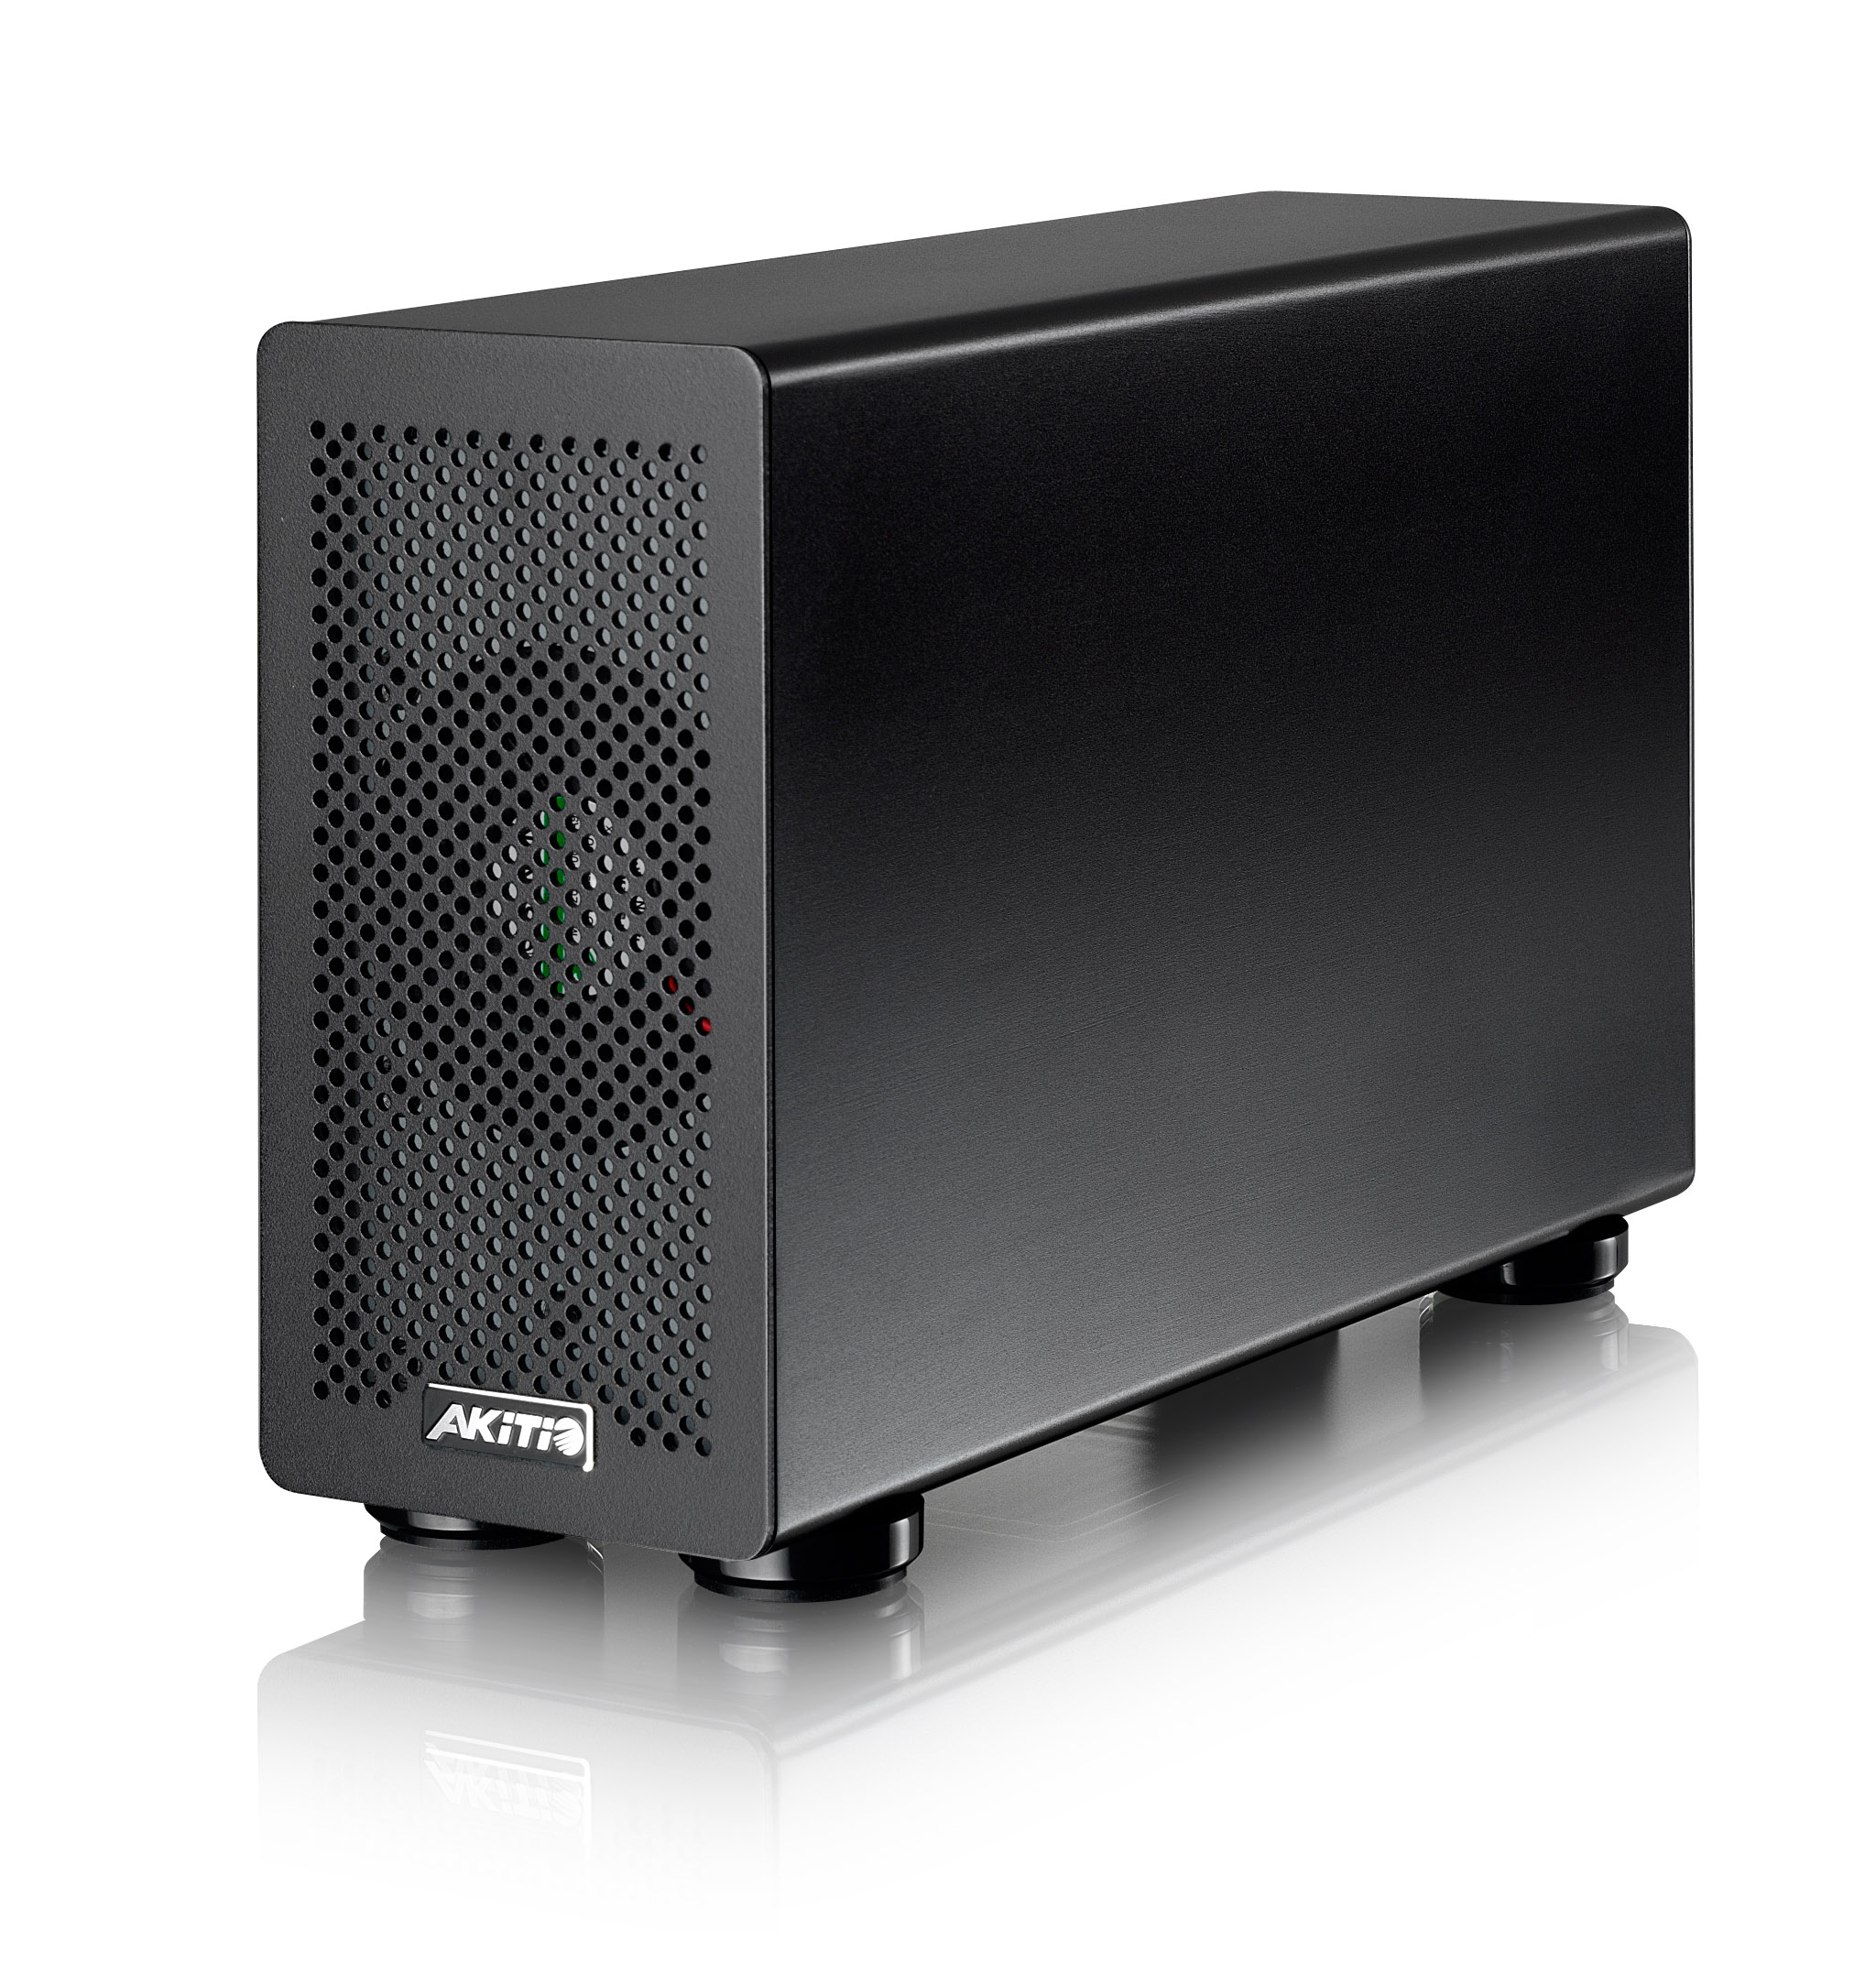 akitio thunder2 pcie box angle highres